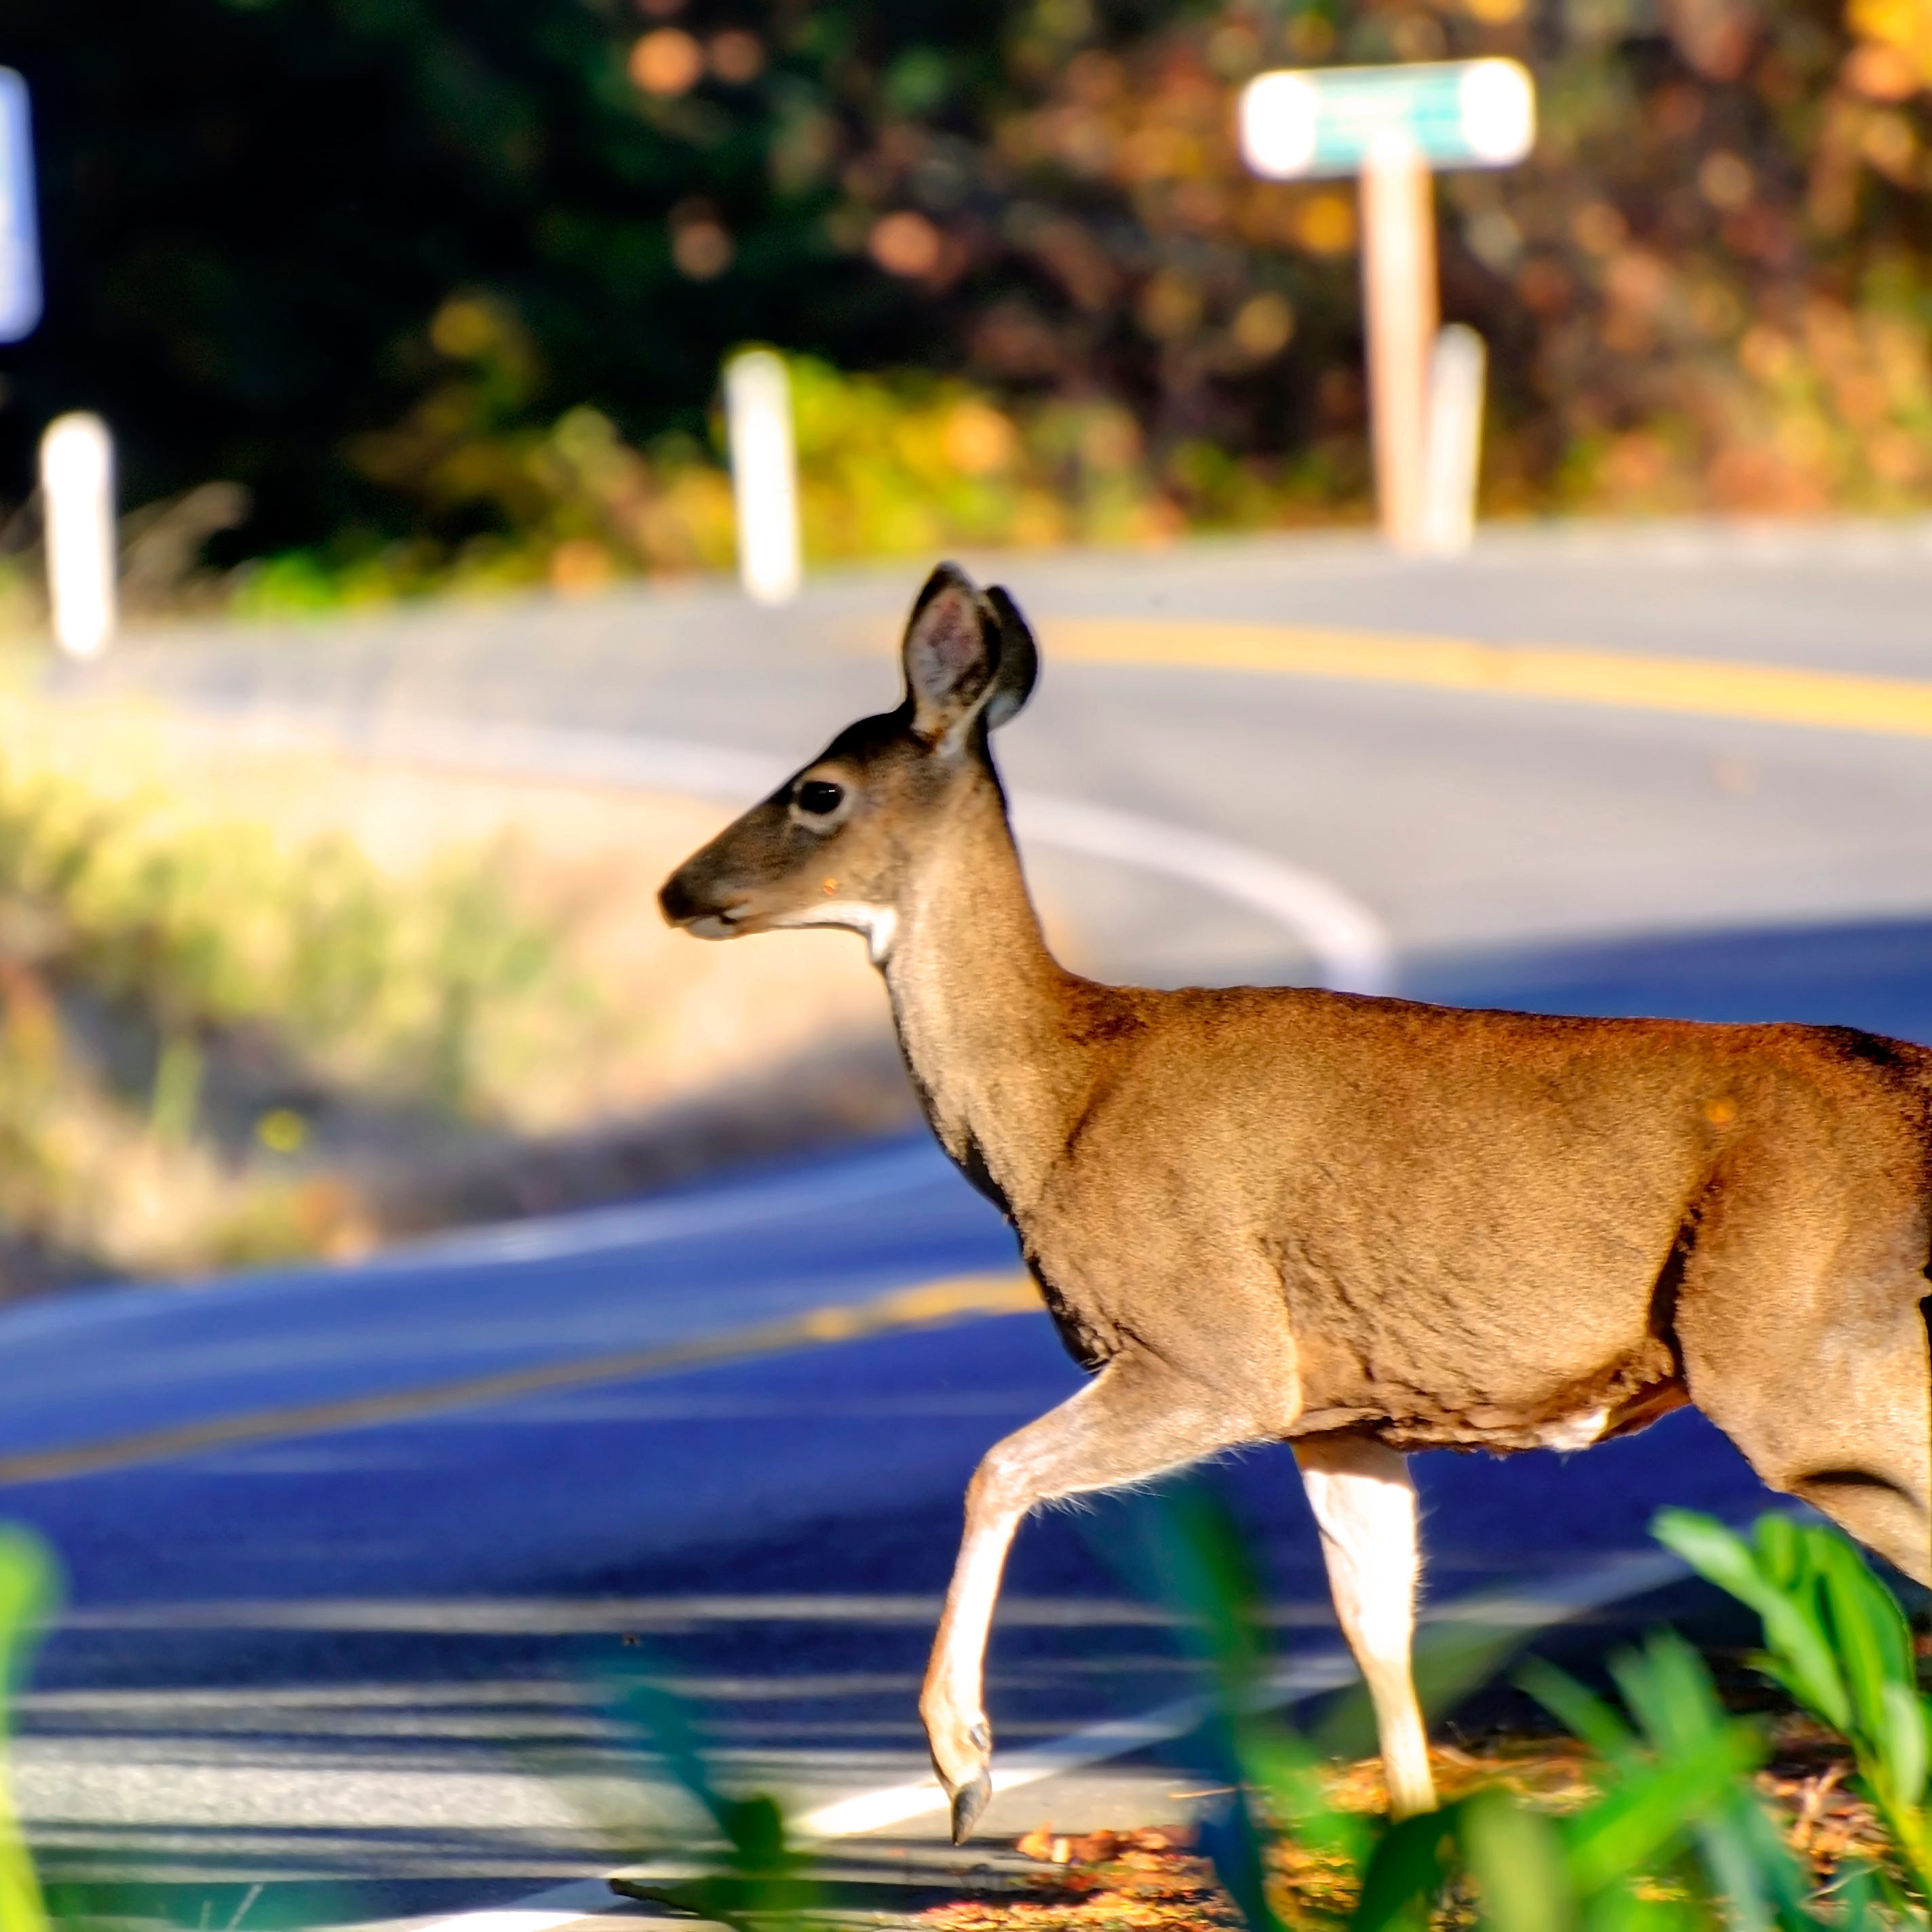 Study: Rochester No. 1 upstate for car-deer collisions